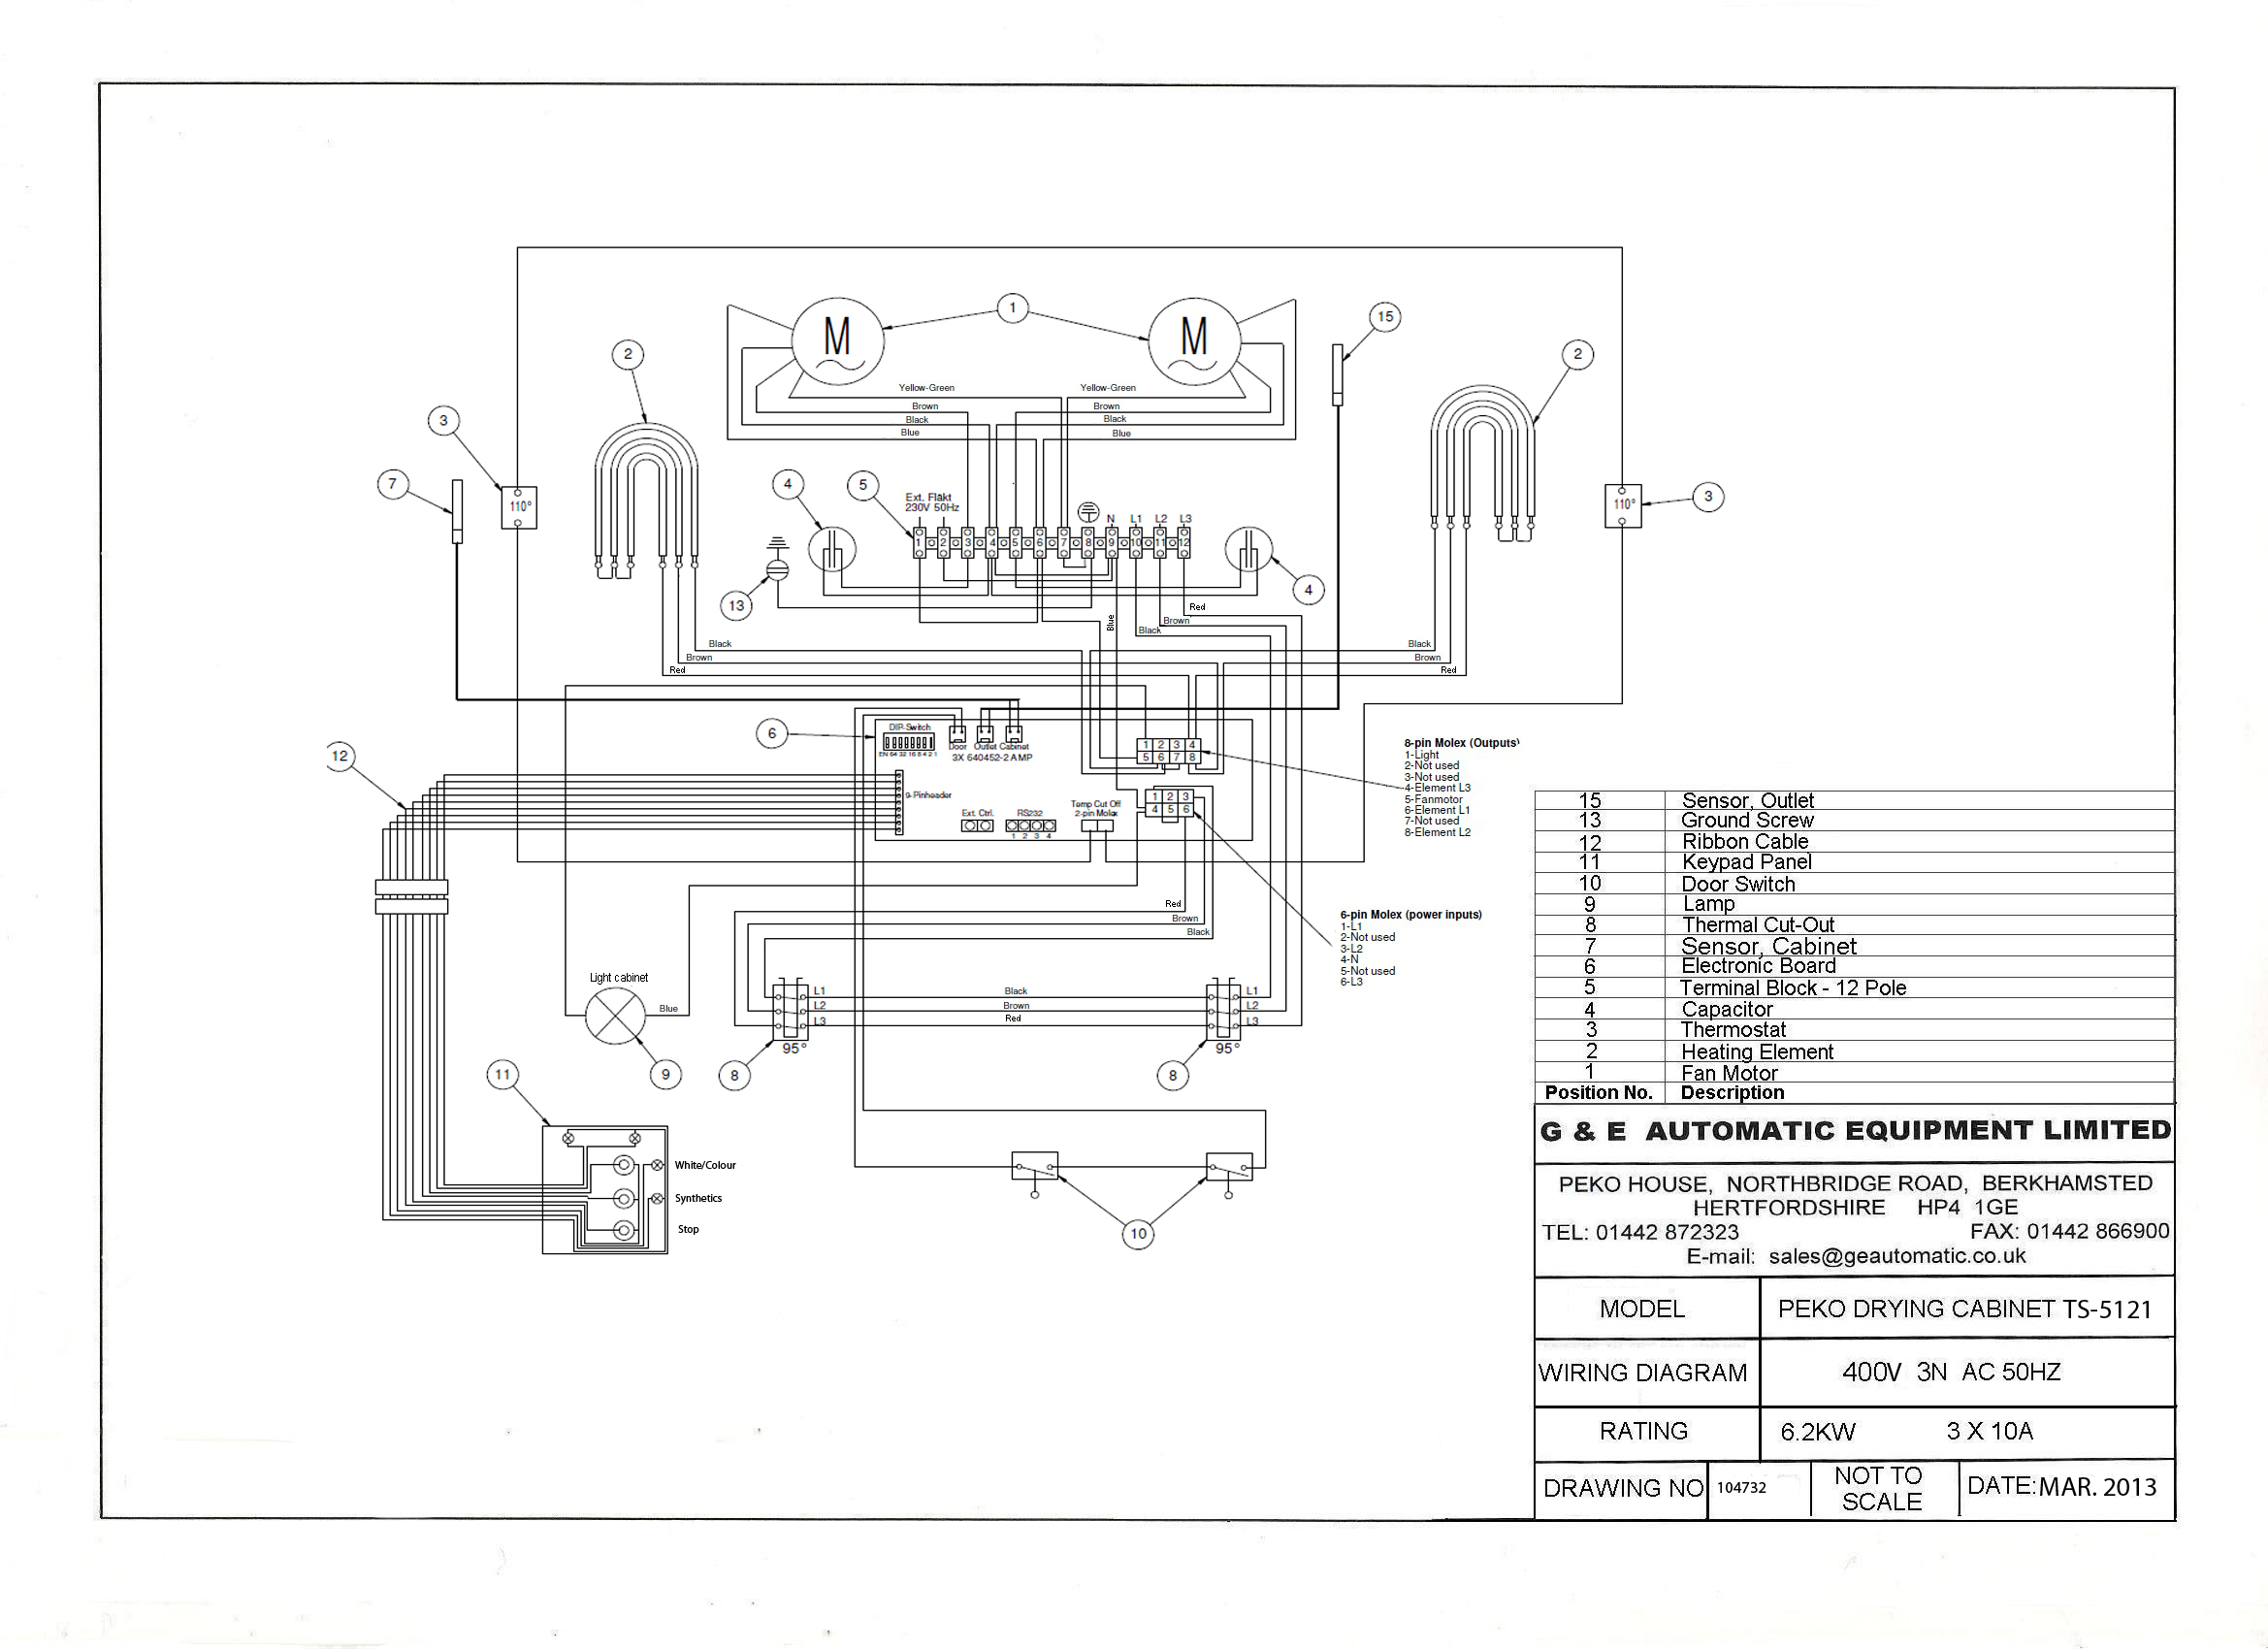 Zero Cross Phase Control Schematic